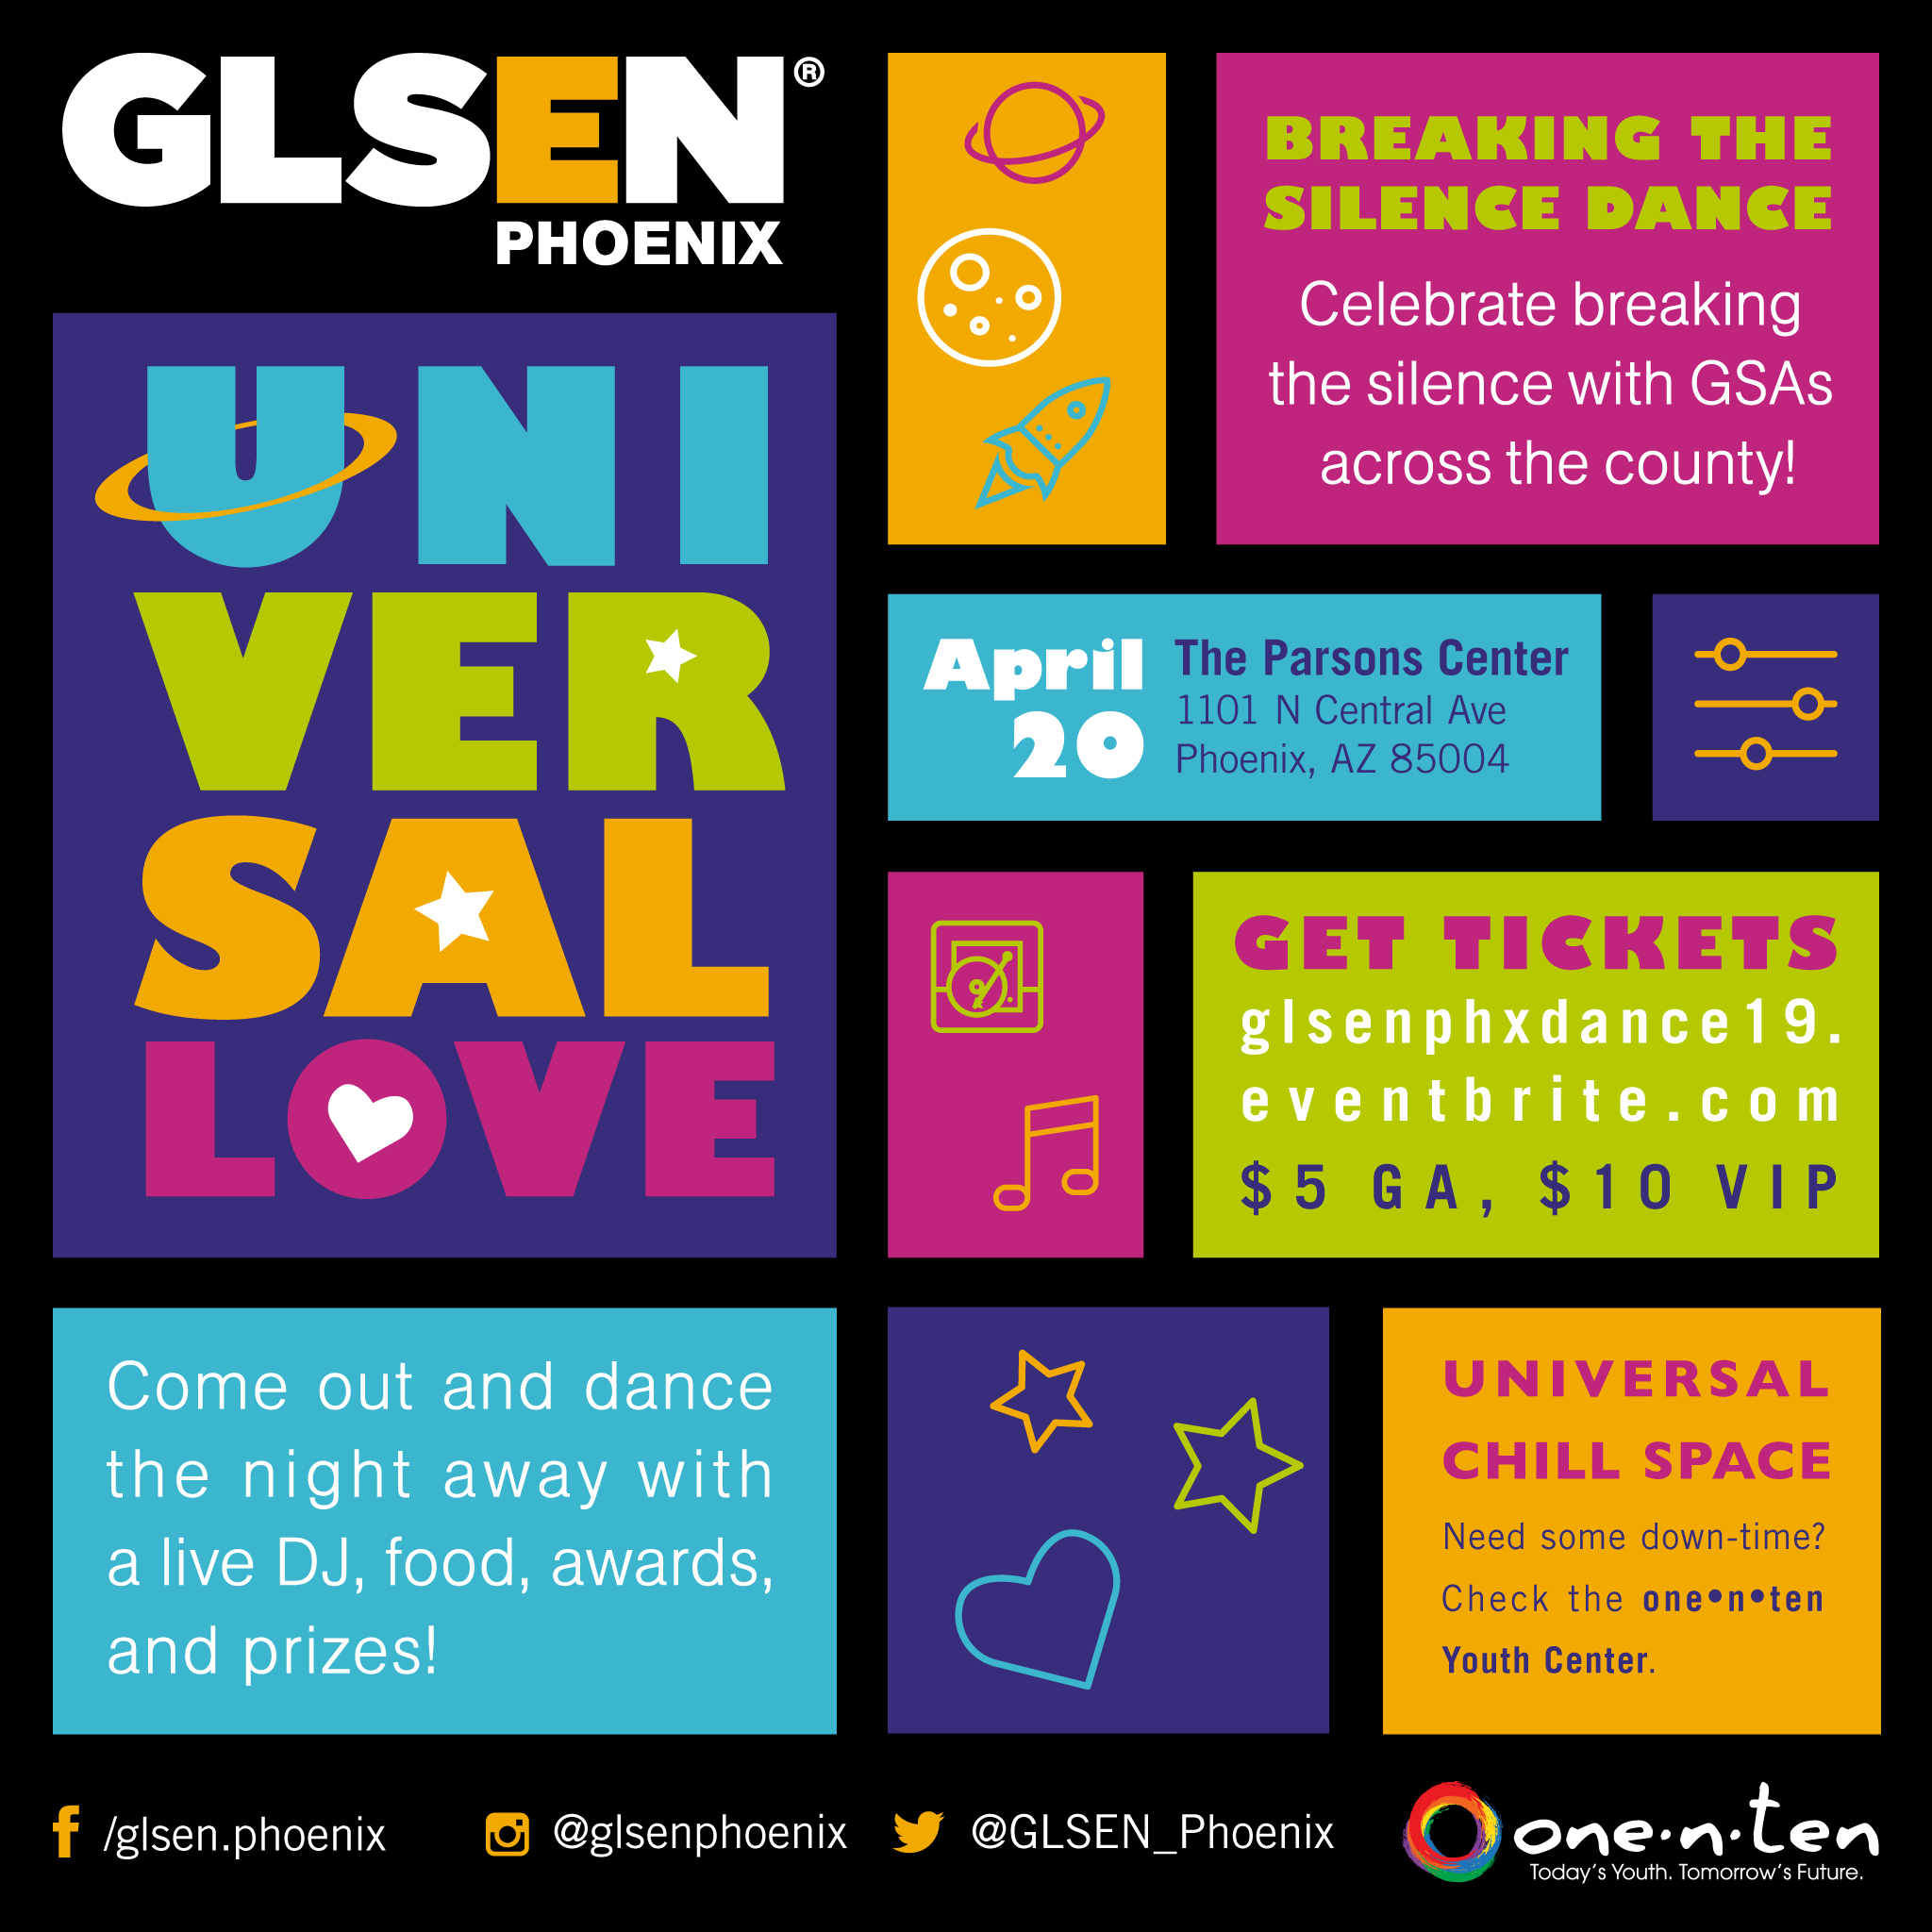 GLSEN PHX 2019 Dance Instagram feed ad